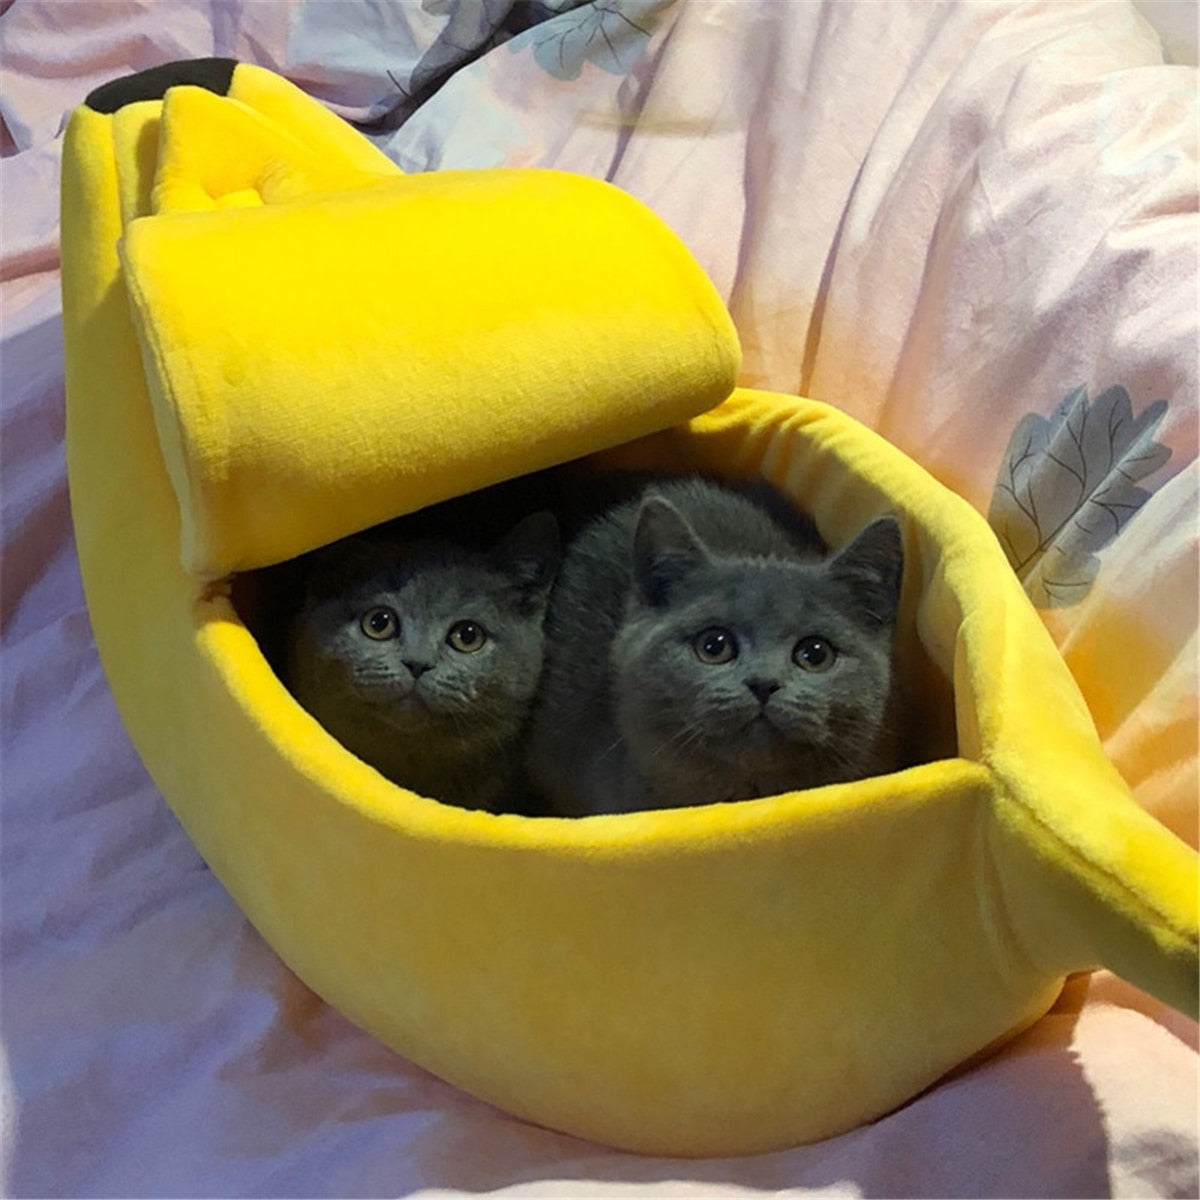 Banana Shape Cat Bed | Warm Portable Cat Supplies | S/M/L/XL